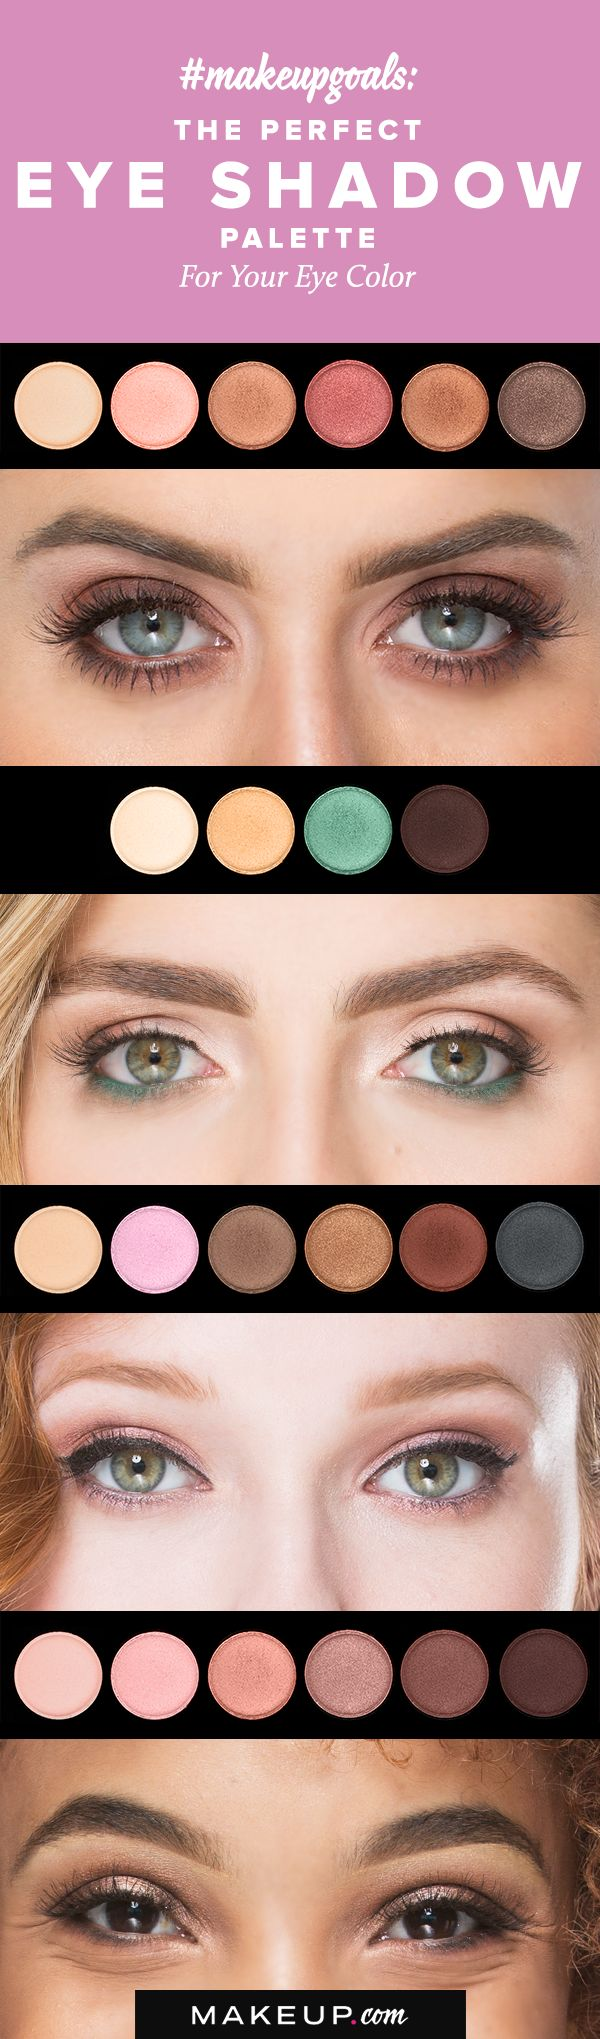 Best 25 hazel eyeshadow ideas on pinterest green hazel eye if youre not sure what eye shadow palette is best for your eye color nvjuhfo Image collections